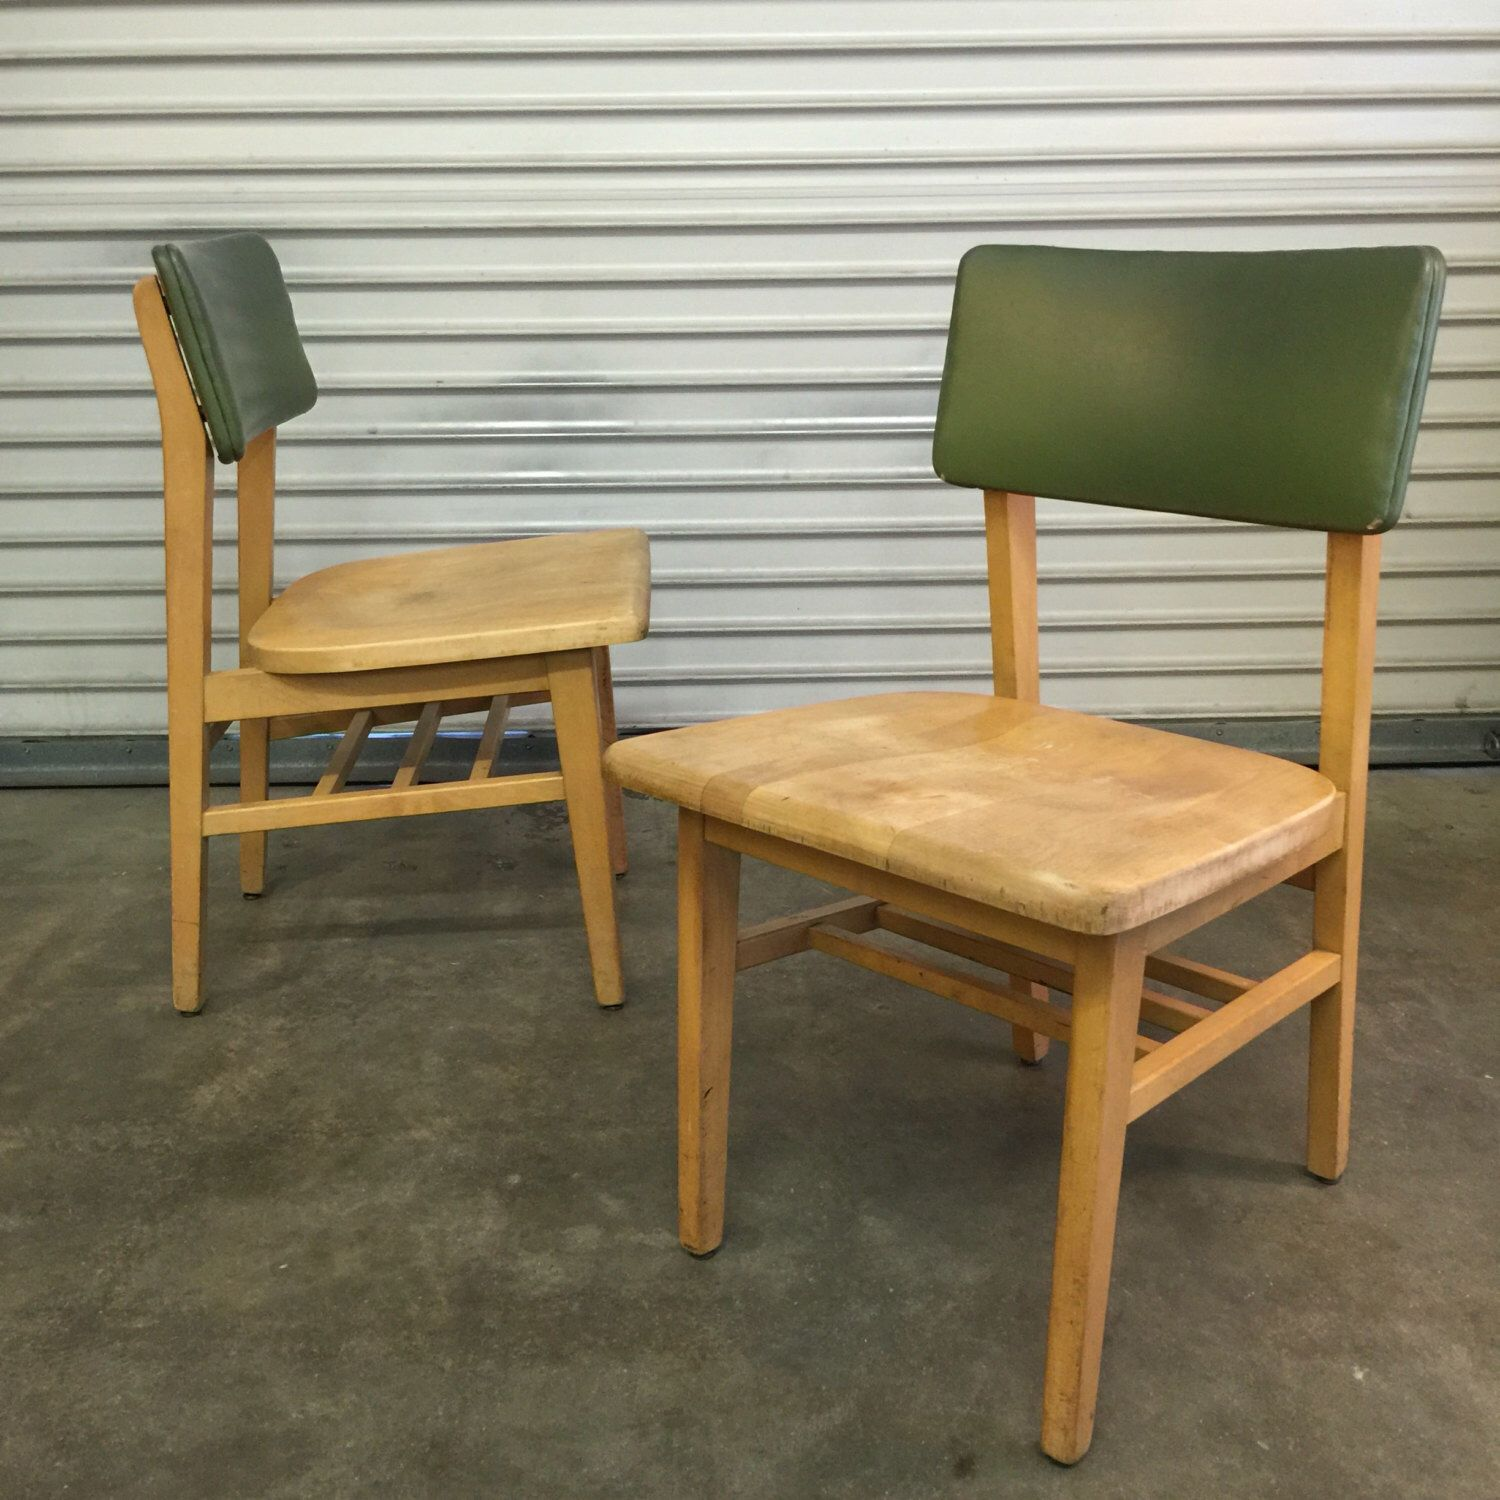 Vintage Wooden Office Chair. Mid Century Library Furniture, Vintage Office  Chairs, Wooden Wood